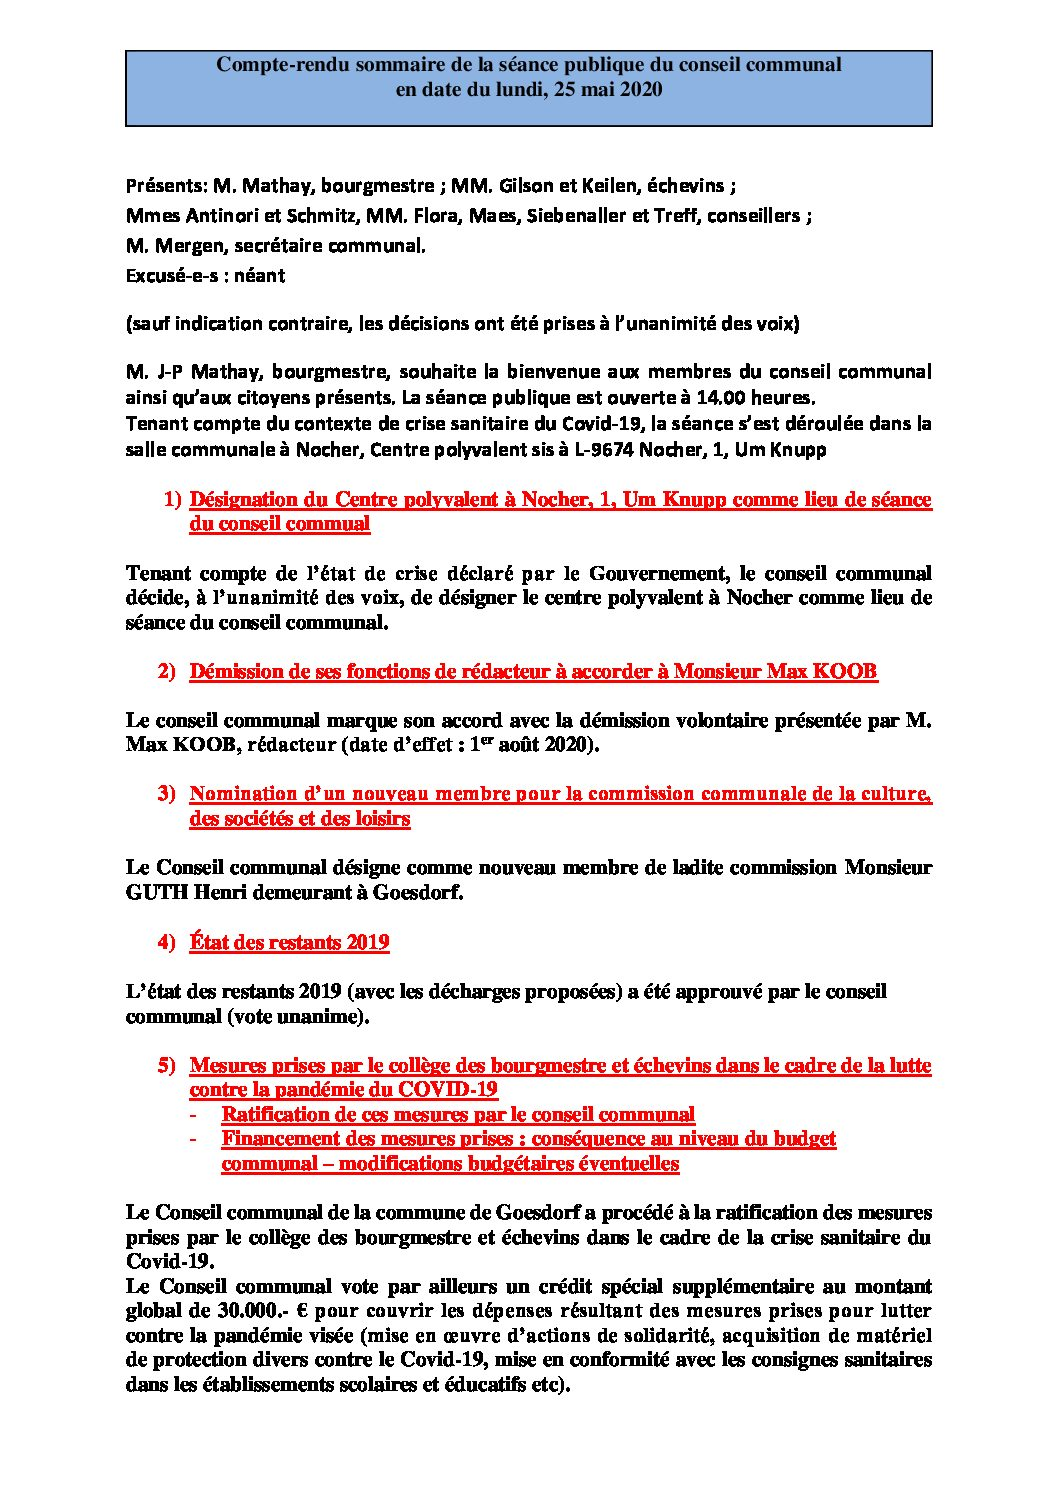 Rapport Conseil communal 25-05-2020